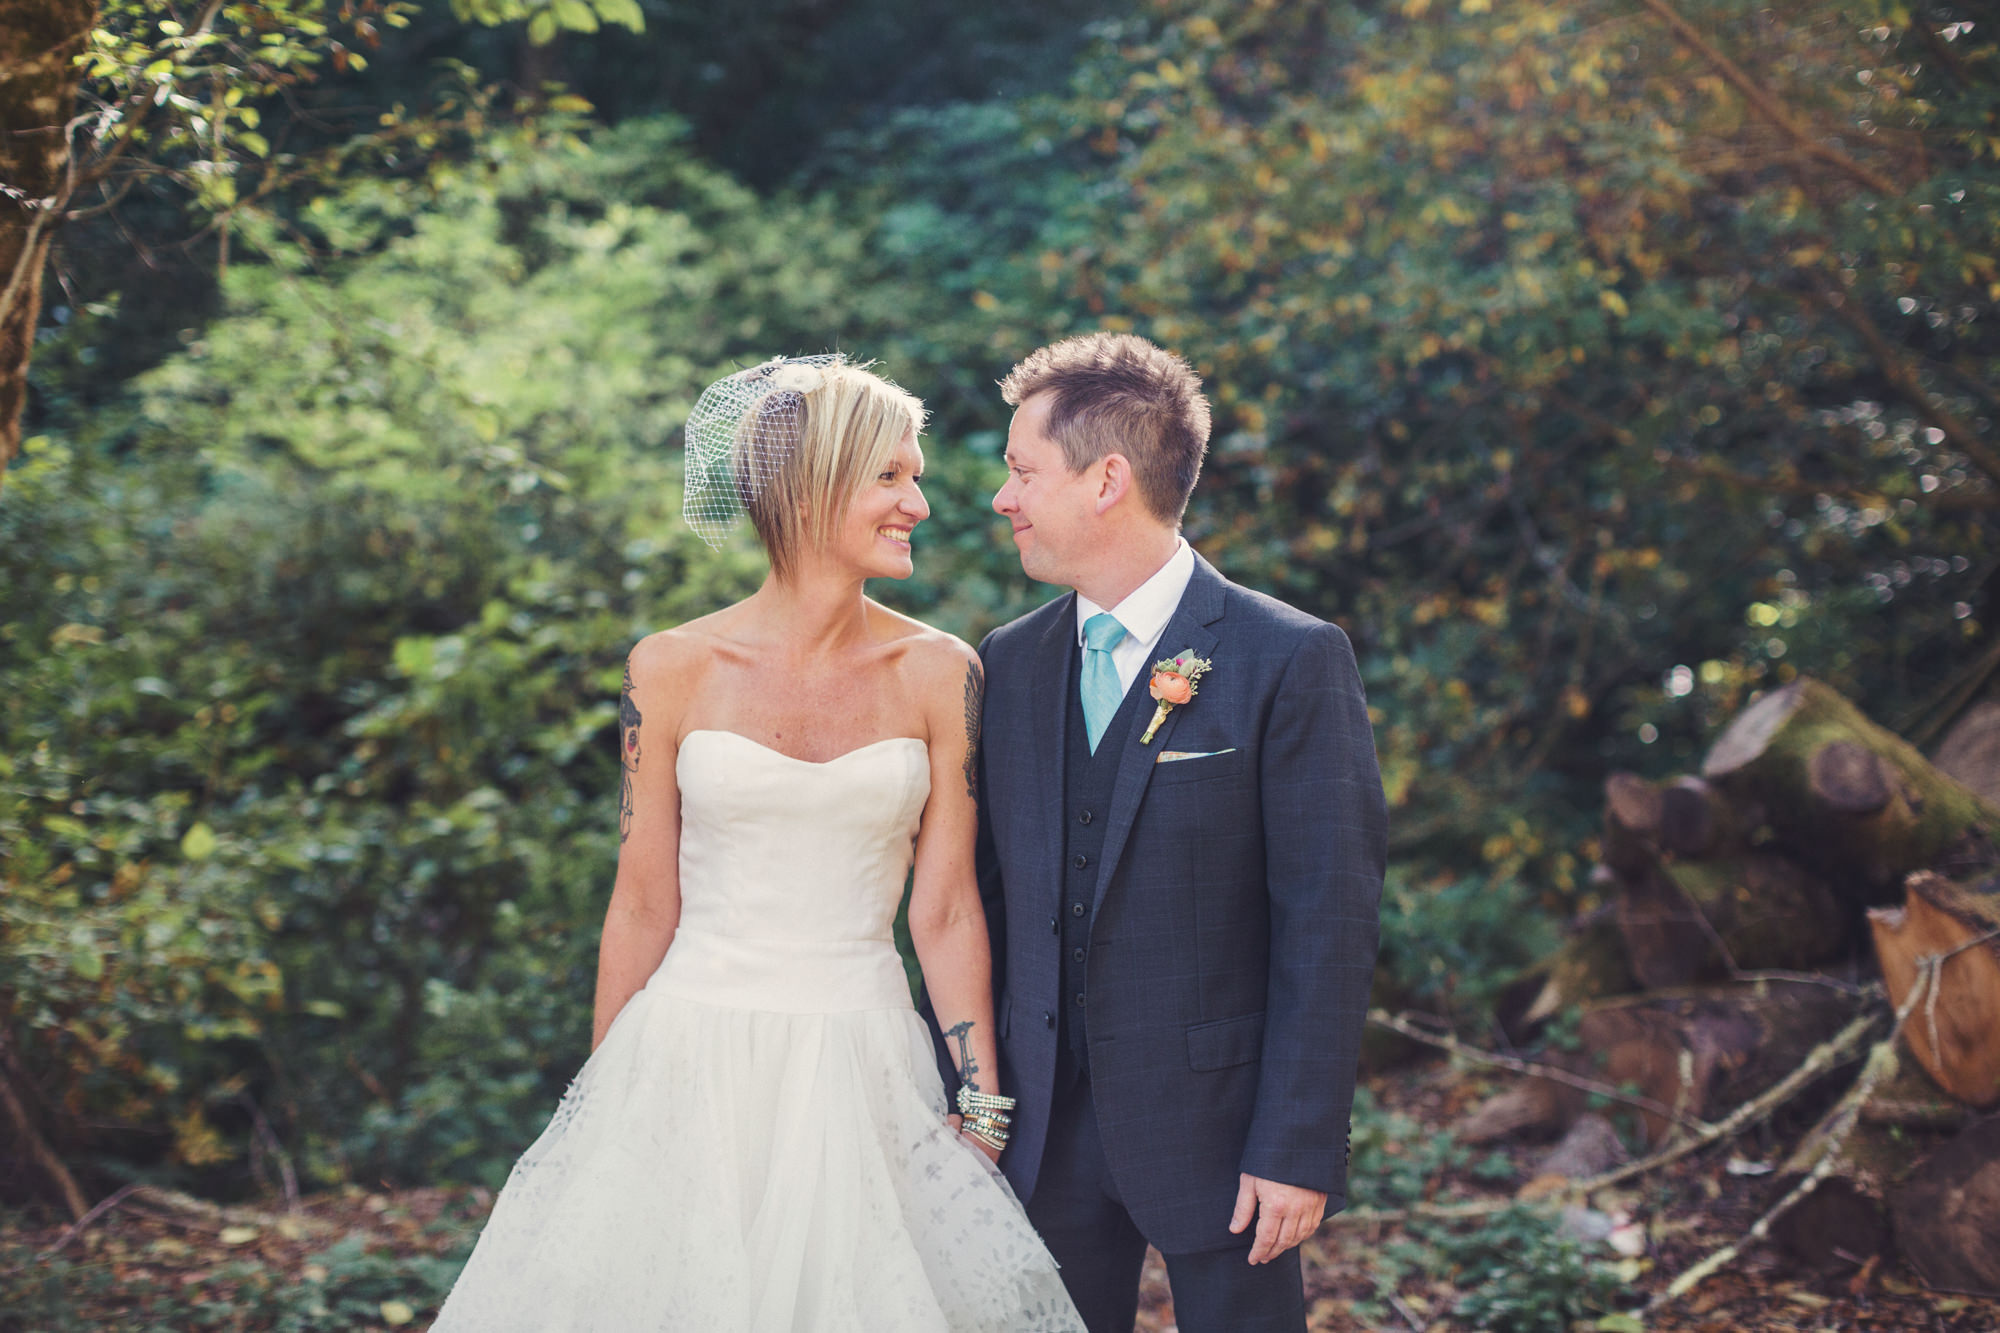 Toby's Feed Barn Wedding ©Anne-Claire Brun 61